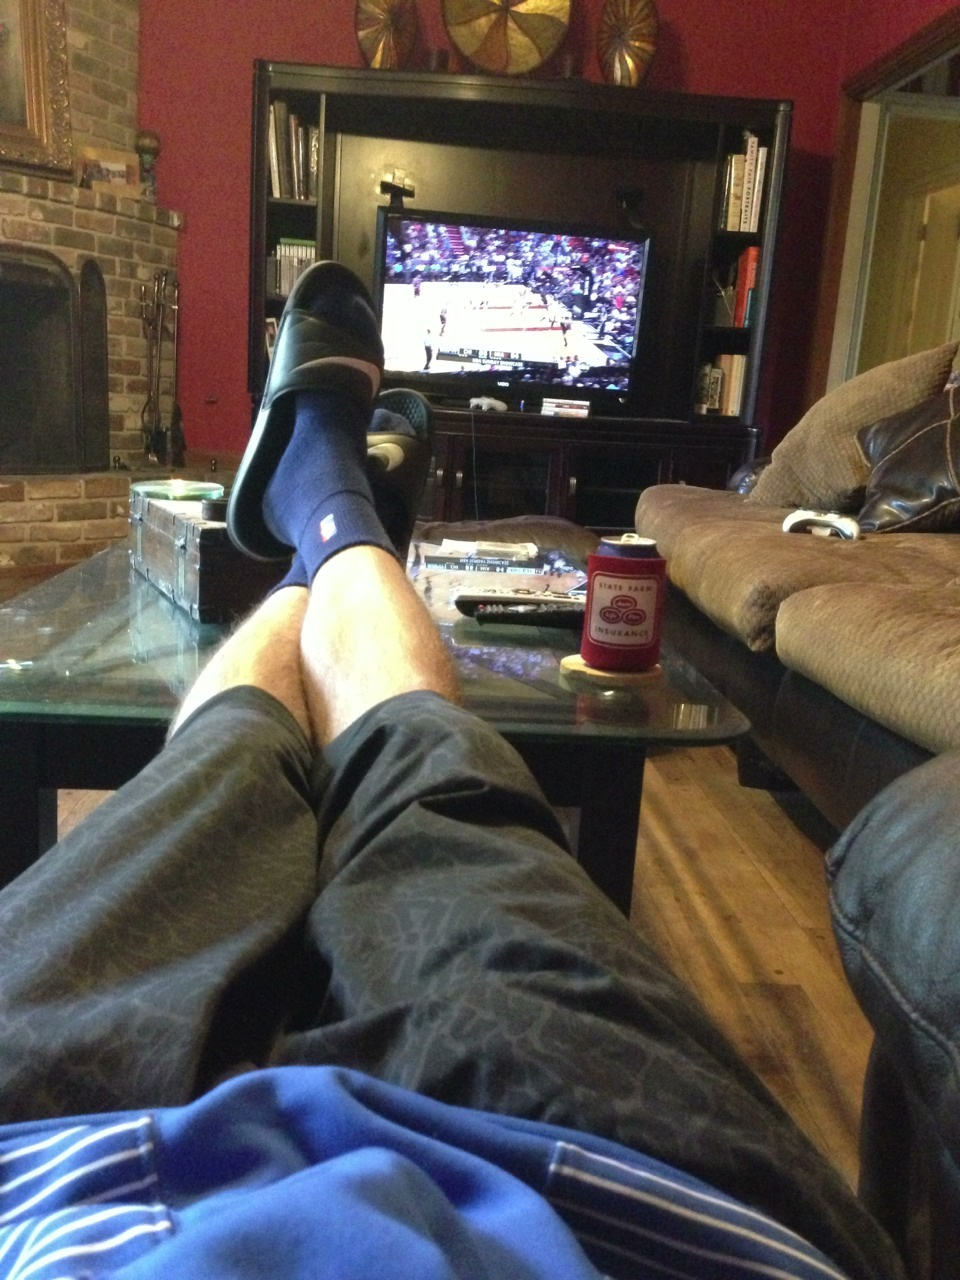 Straight chilling on this fine Sunday. Heat vs Bulls, fat tire and bowls